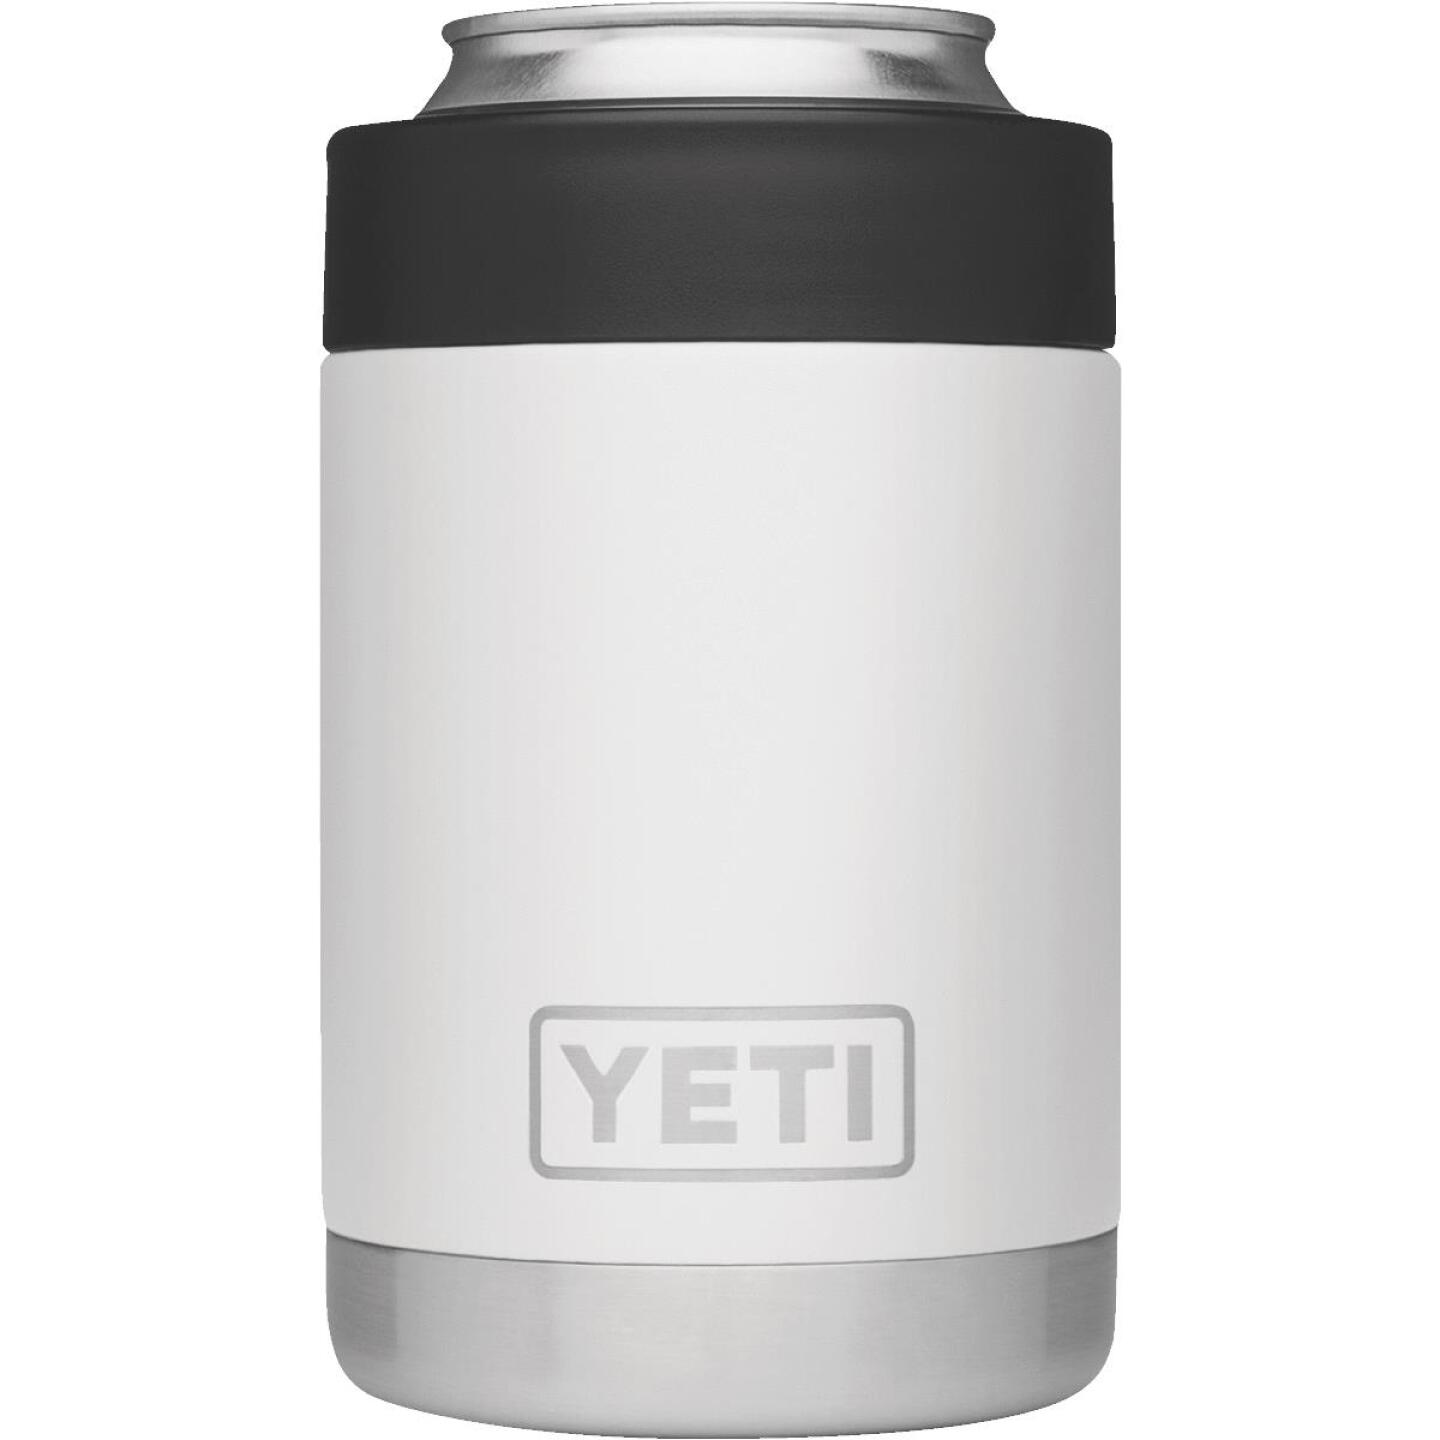 Yeti Rambler Colster 12 Oz. White Stainless Steel Insulated Drink Holder Image 1